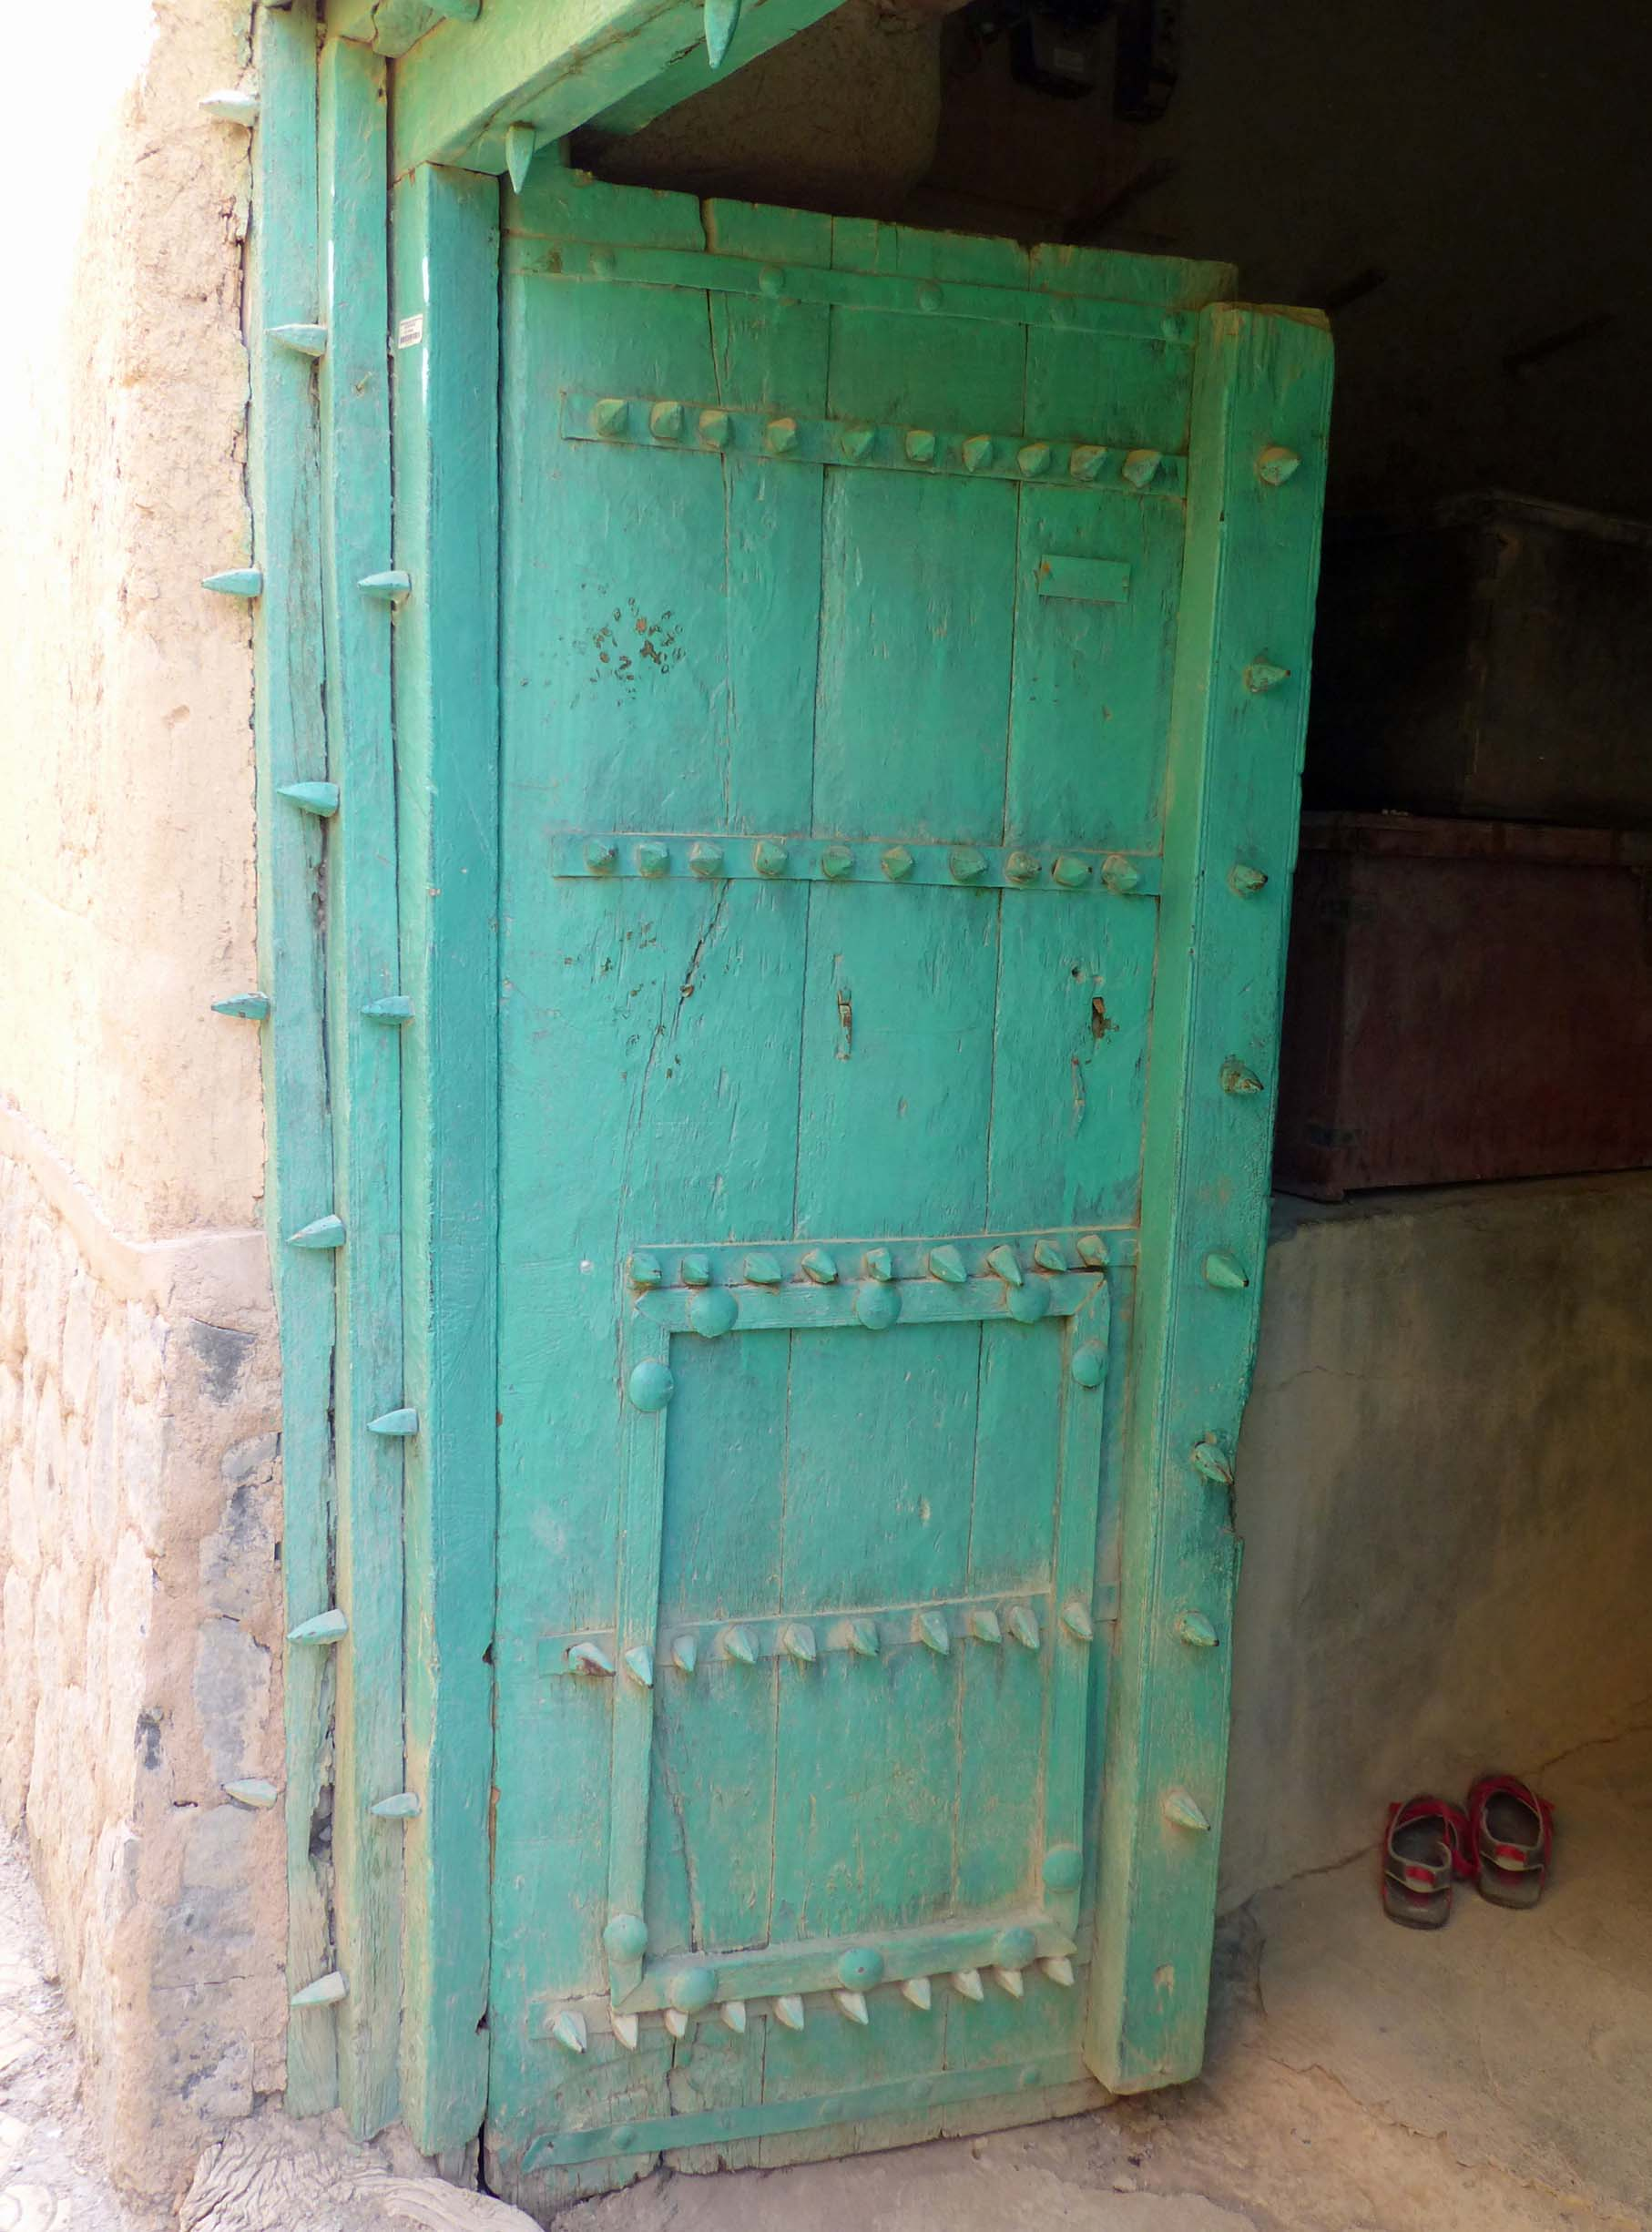 Green door propped open with glimpse of shoes inside